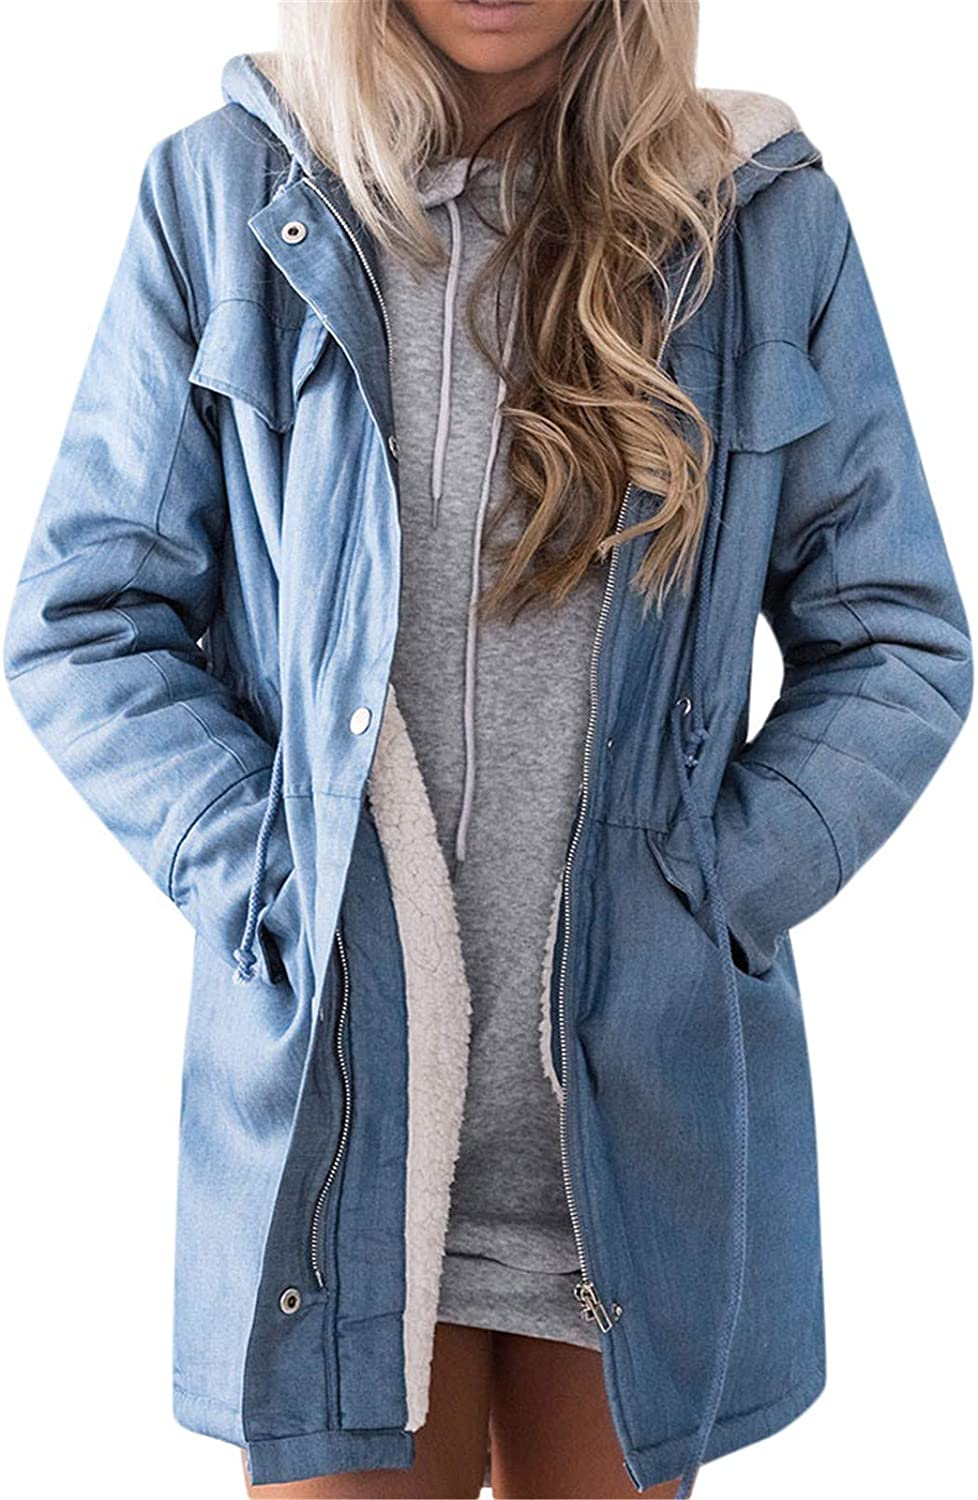 Womens Thick Loose Distressed Fleece Lined Hooded Denim Jean Jacket Cotton Long Sleeve Coat Outwear Overcoat Trench Coats